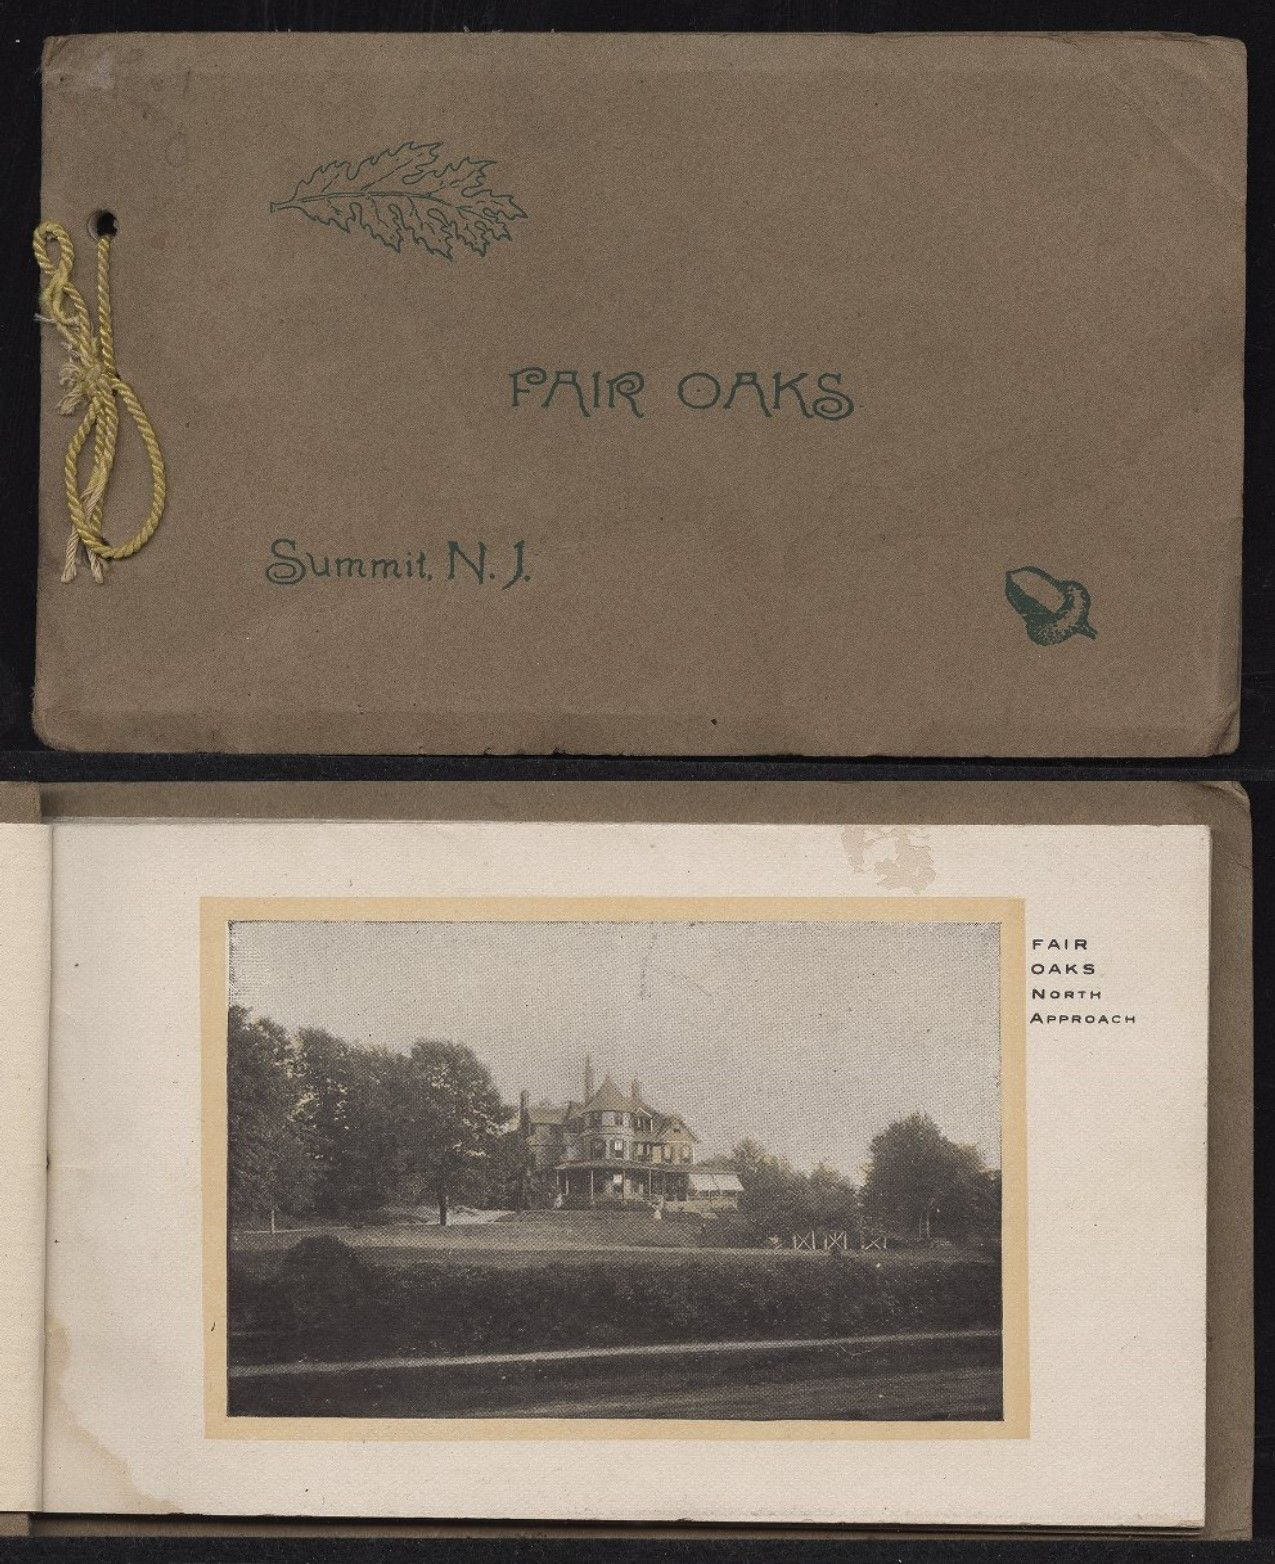 Pamphlet on the Fair Oaks Sanatorium in Summit, New Jersey, operated by Dr. Eliot Gorton and Dr. Thomas P. Prout. The pamphlet provides details on the treatments offered and includes pictures of the facility with both exterior views of the building, gardens and porch, and interior views of therapy rooms, dining room and library. Dated circa 1900–1940. From the J. Bryan Grimes Papers (#54), East Carolina Manuscript Collection, J. Y. Joyner Library, East Carolina University, Greenville, N.C.